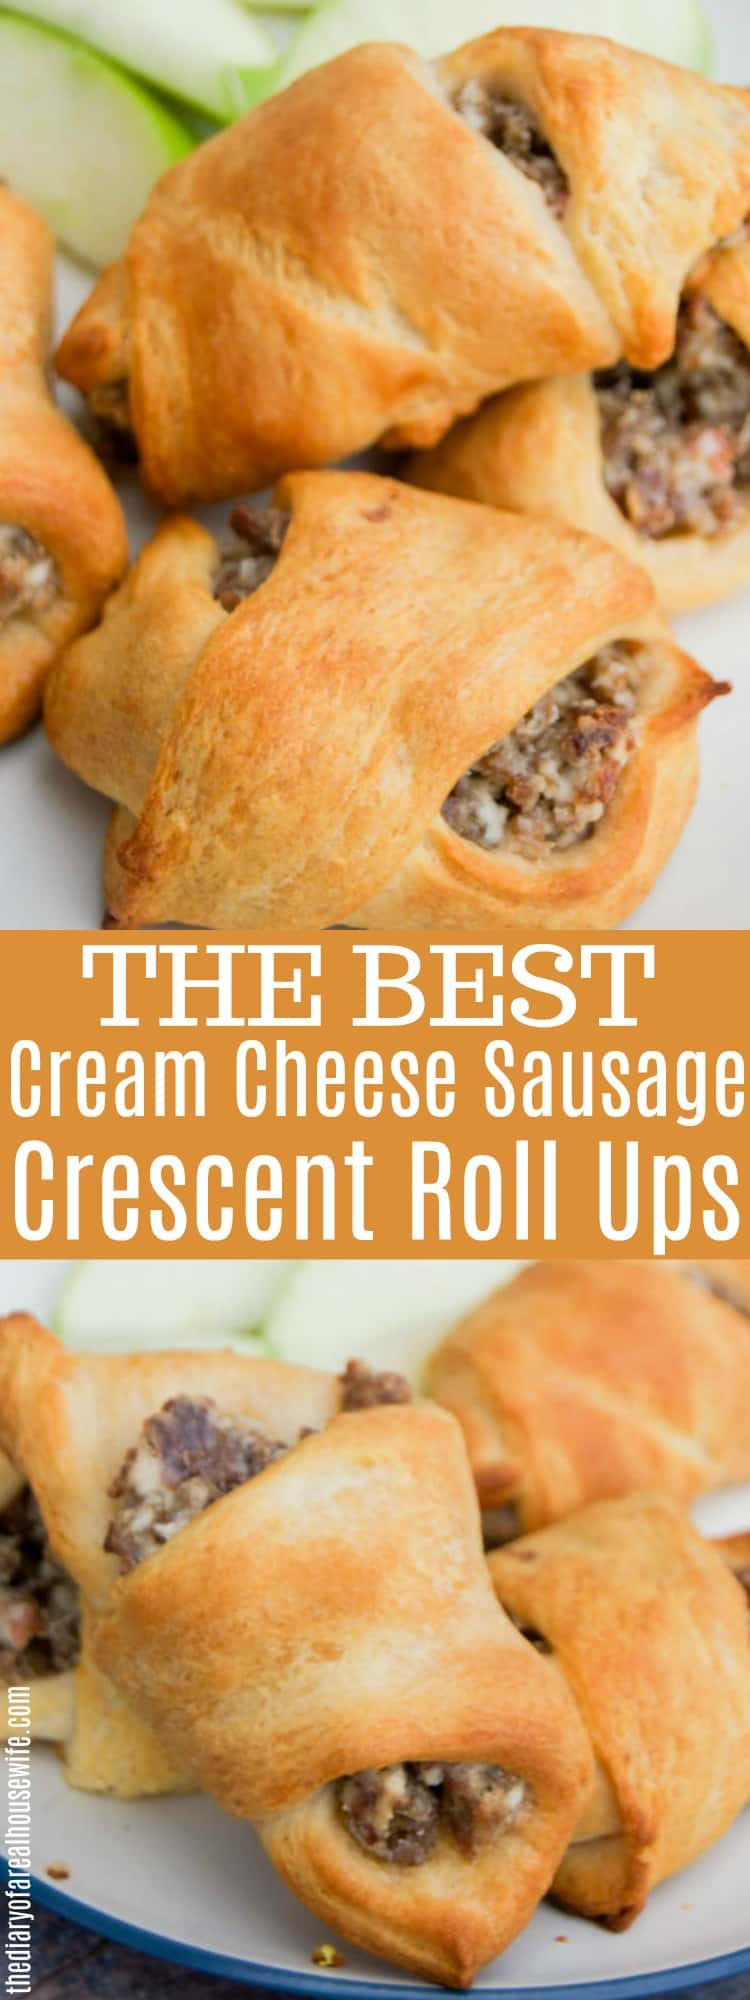 Cream Cheese Sausage Crescent Roll Ups